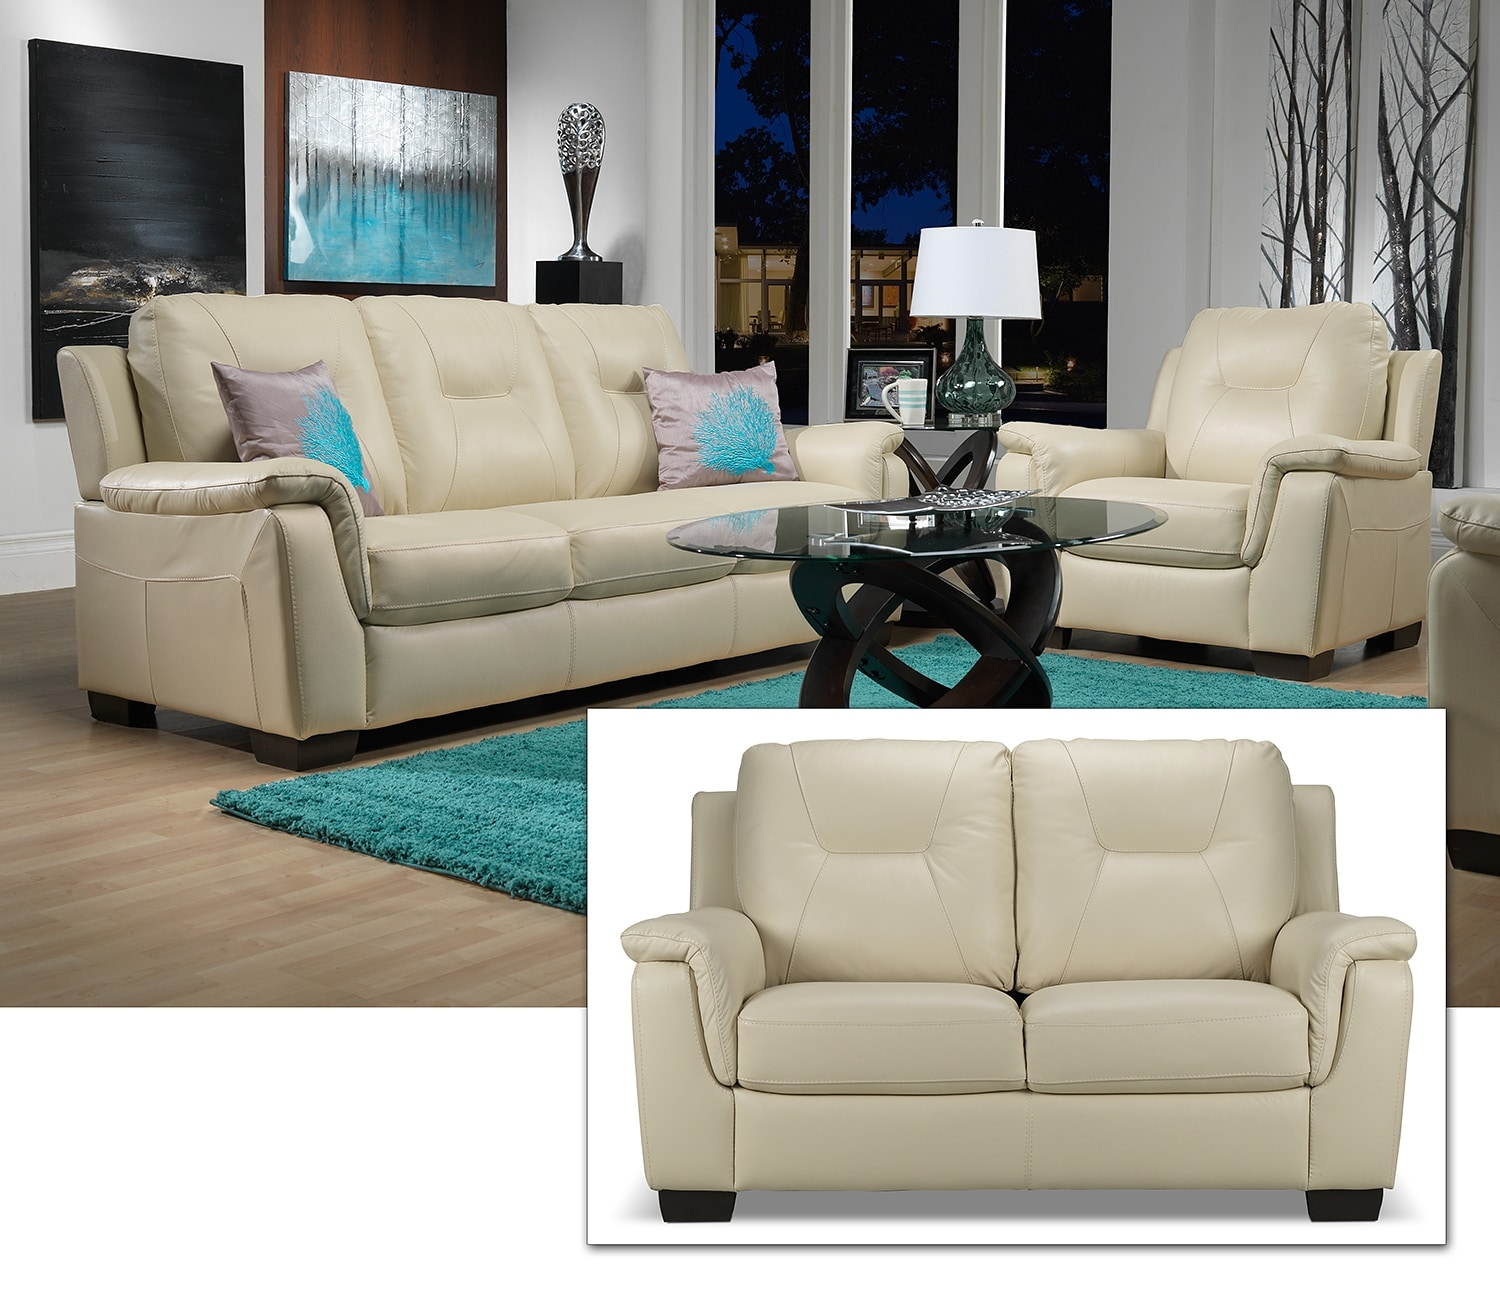 Dalia Sofa, Lovseat and Chair Set - Bisque